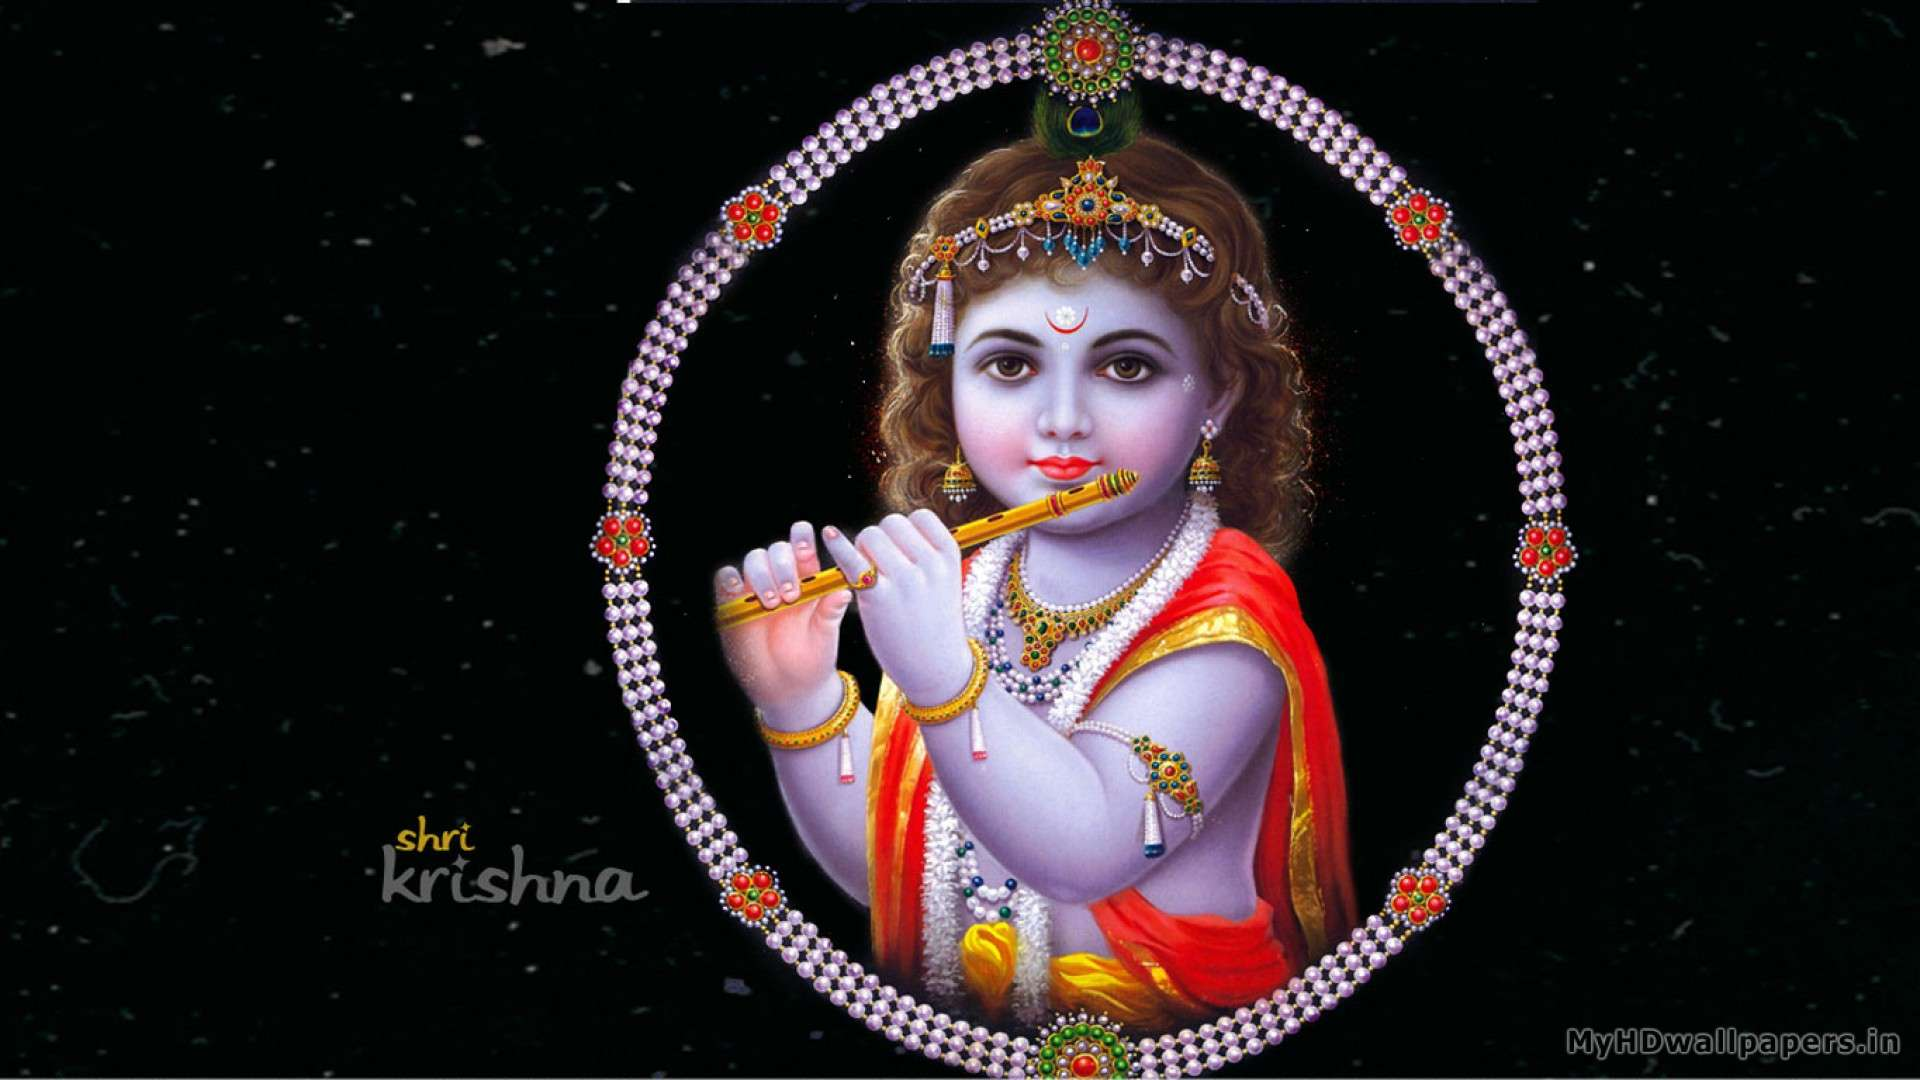 Lord Krishna Hd Wallpapers For Desktop Hd Wallpapers